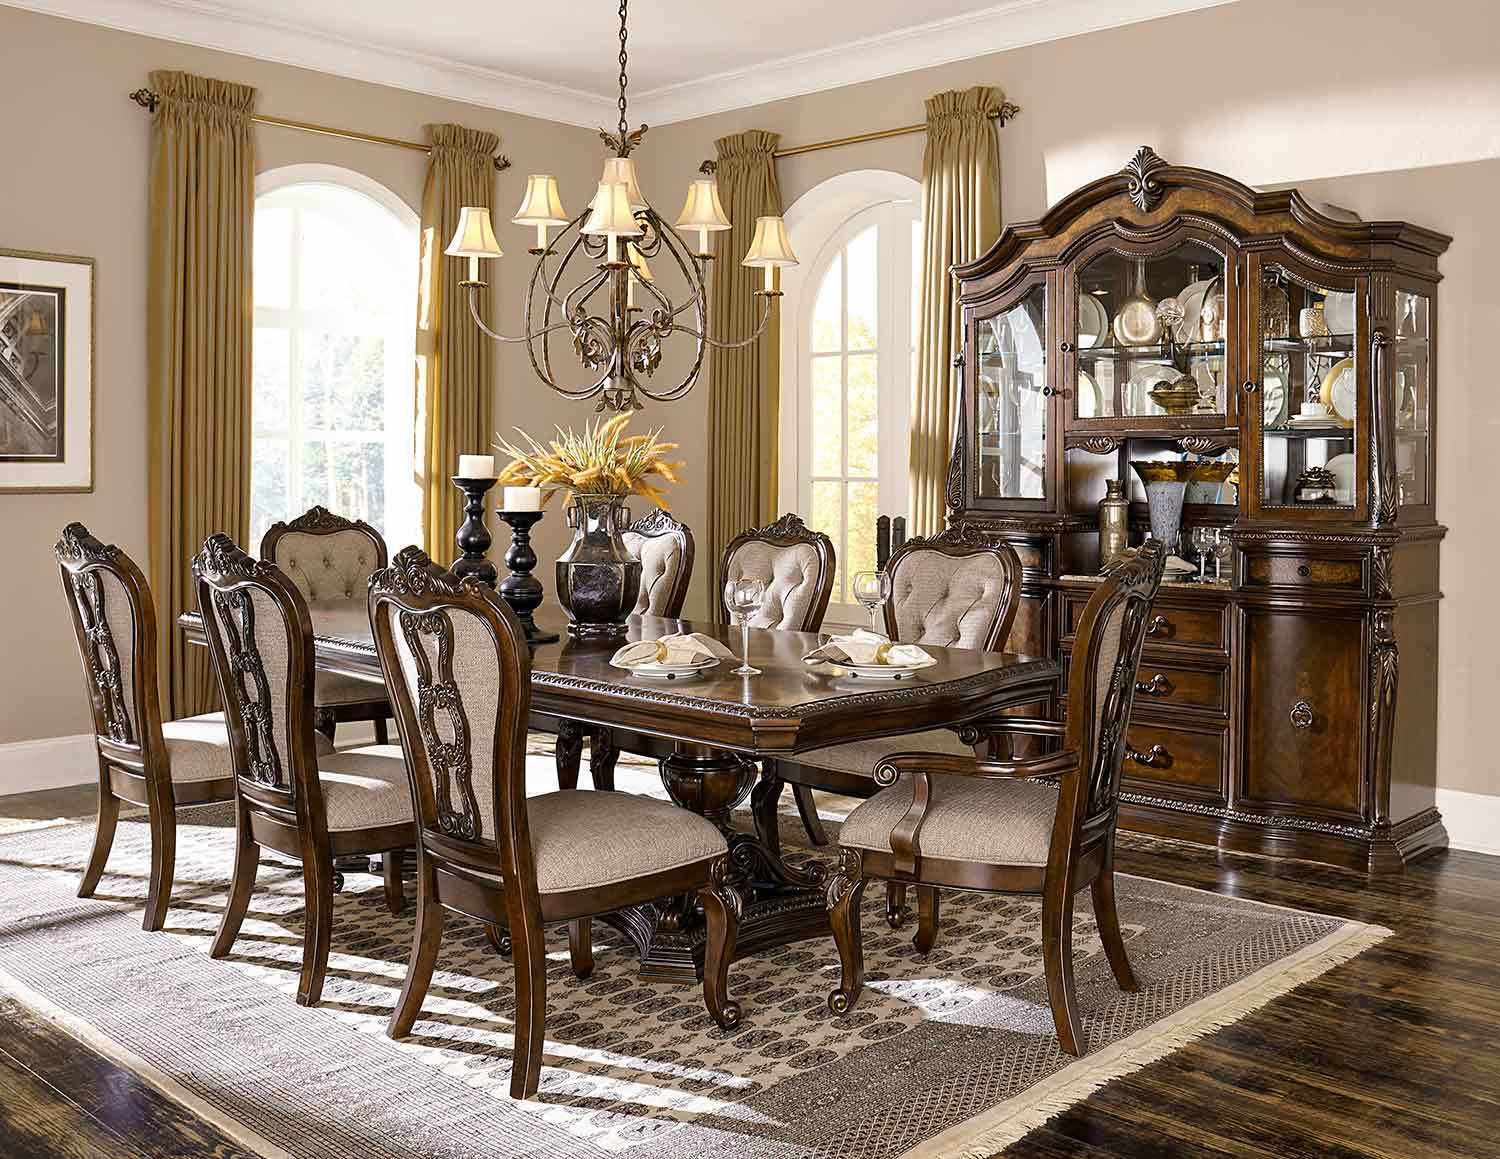 Homelegance Bonaventure Park Dining Set - Gold-Highlighted Cherry